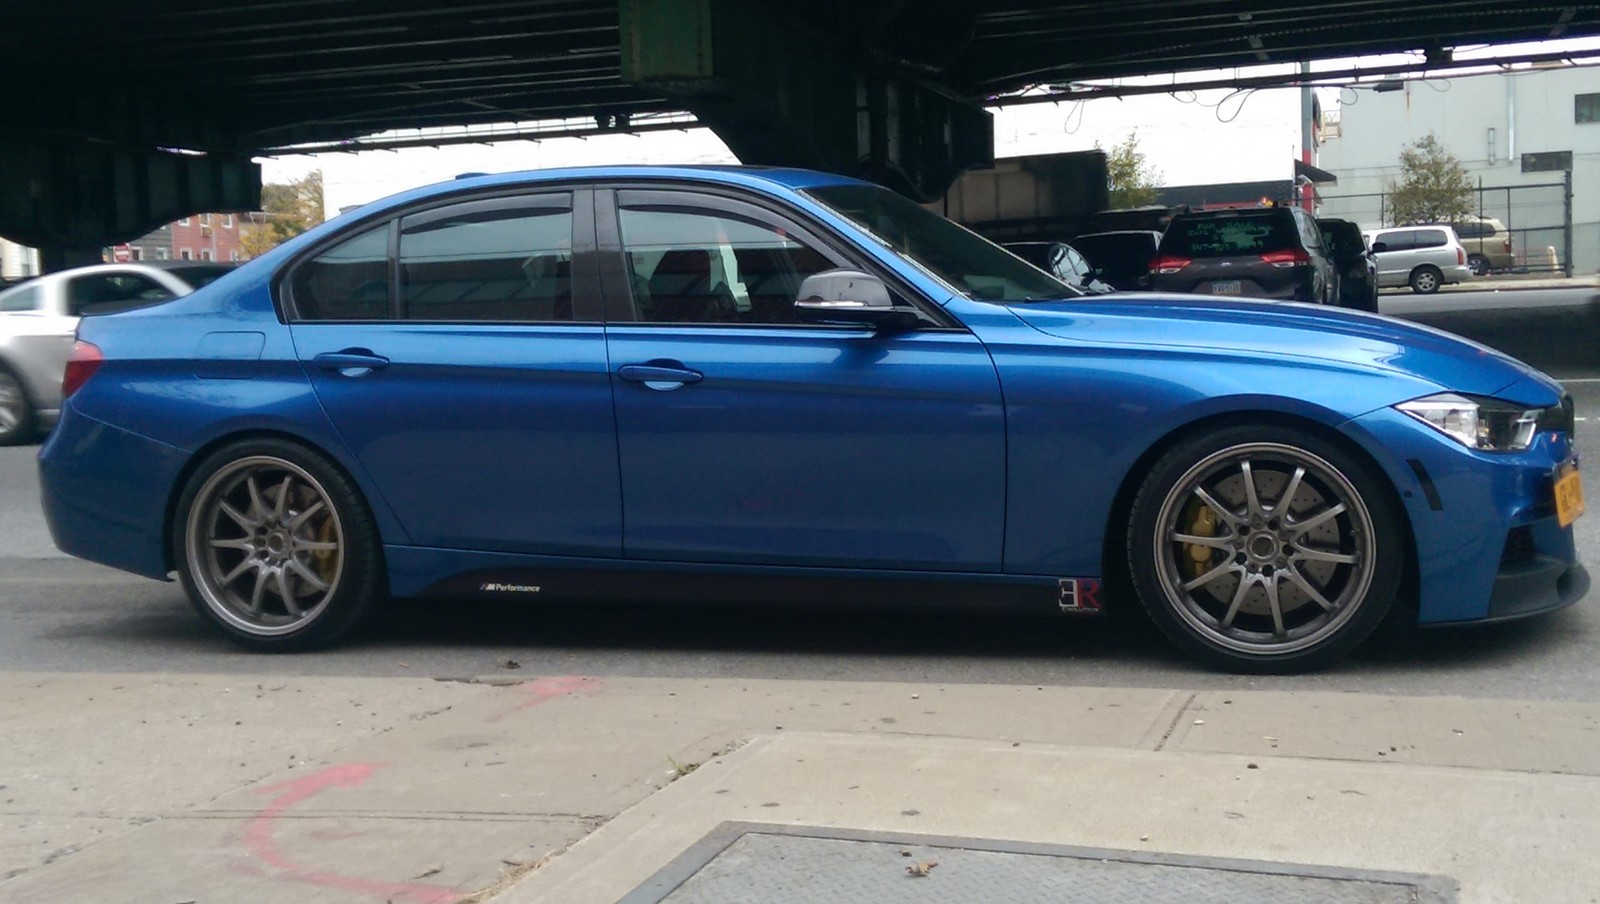 2014 Bmw 335xi 1 4 Mile Drag Racing Timeslip Specs 0 60 Dragtimes Com